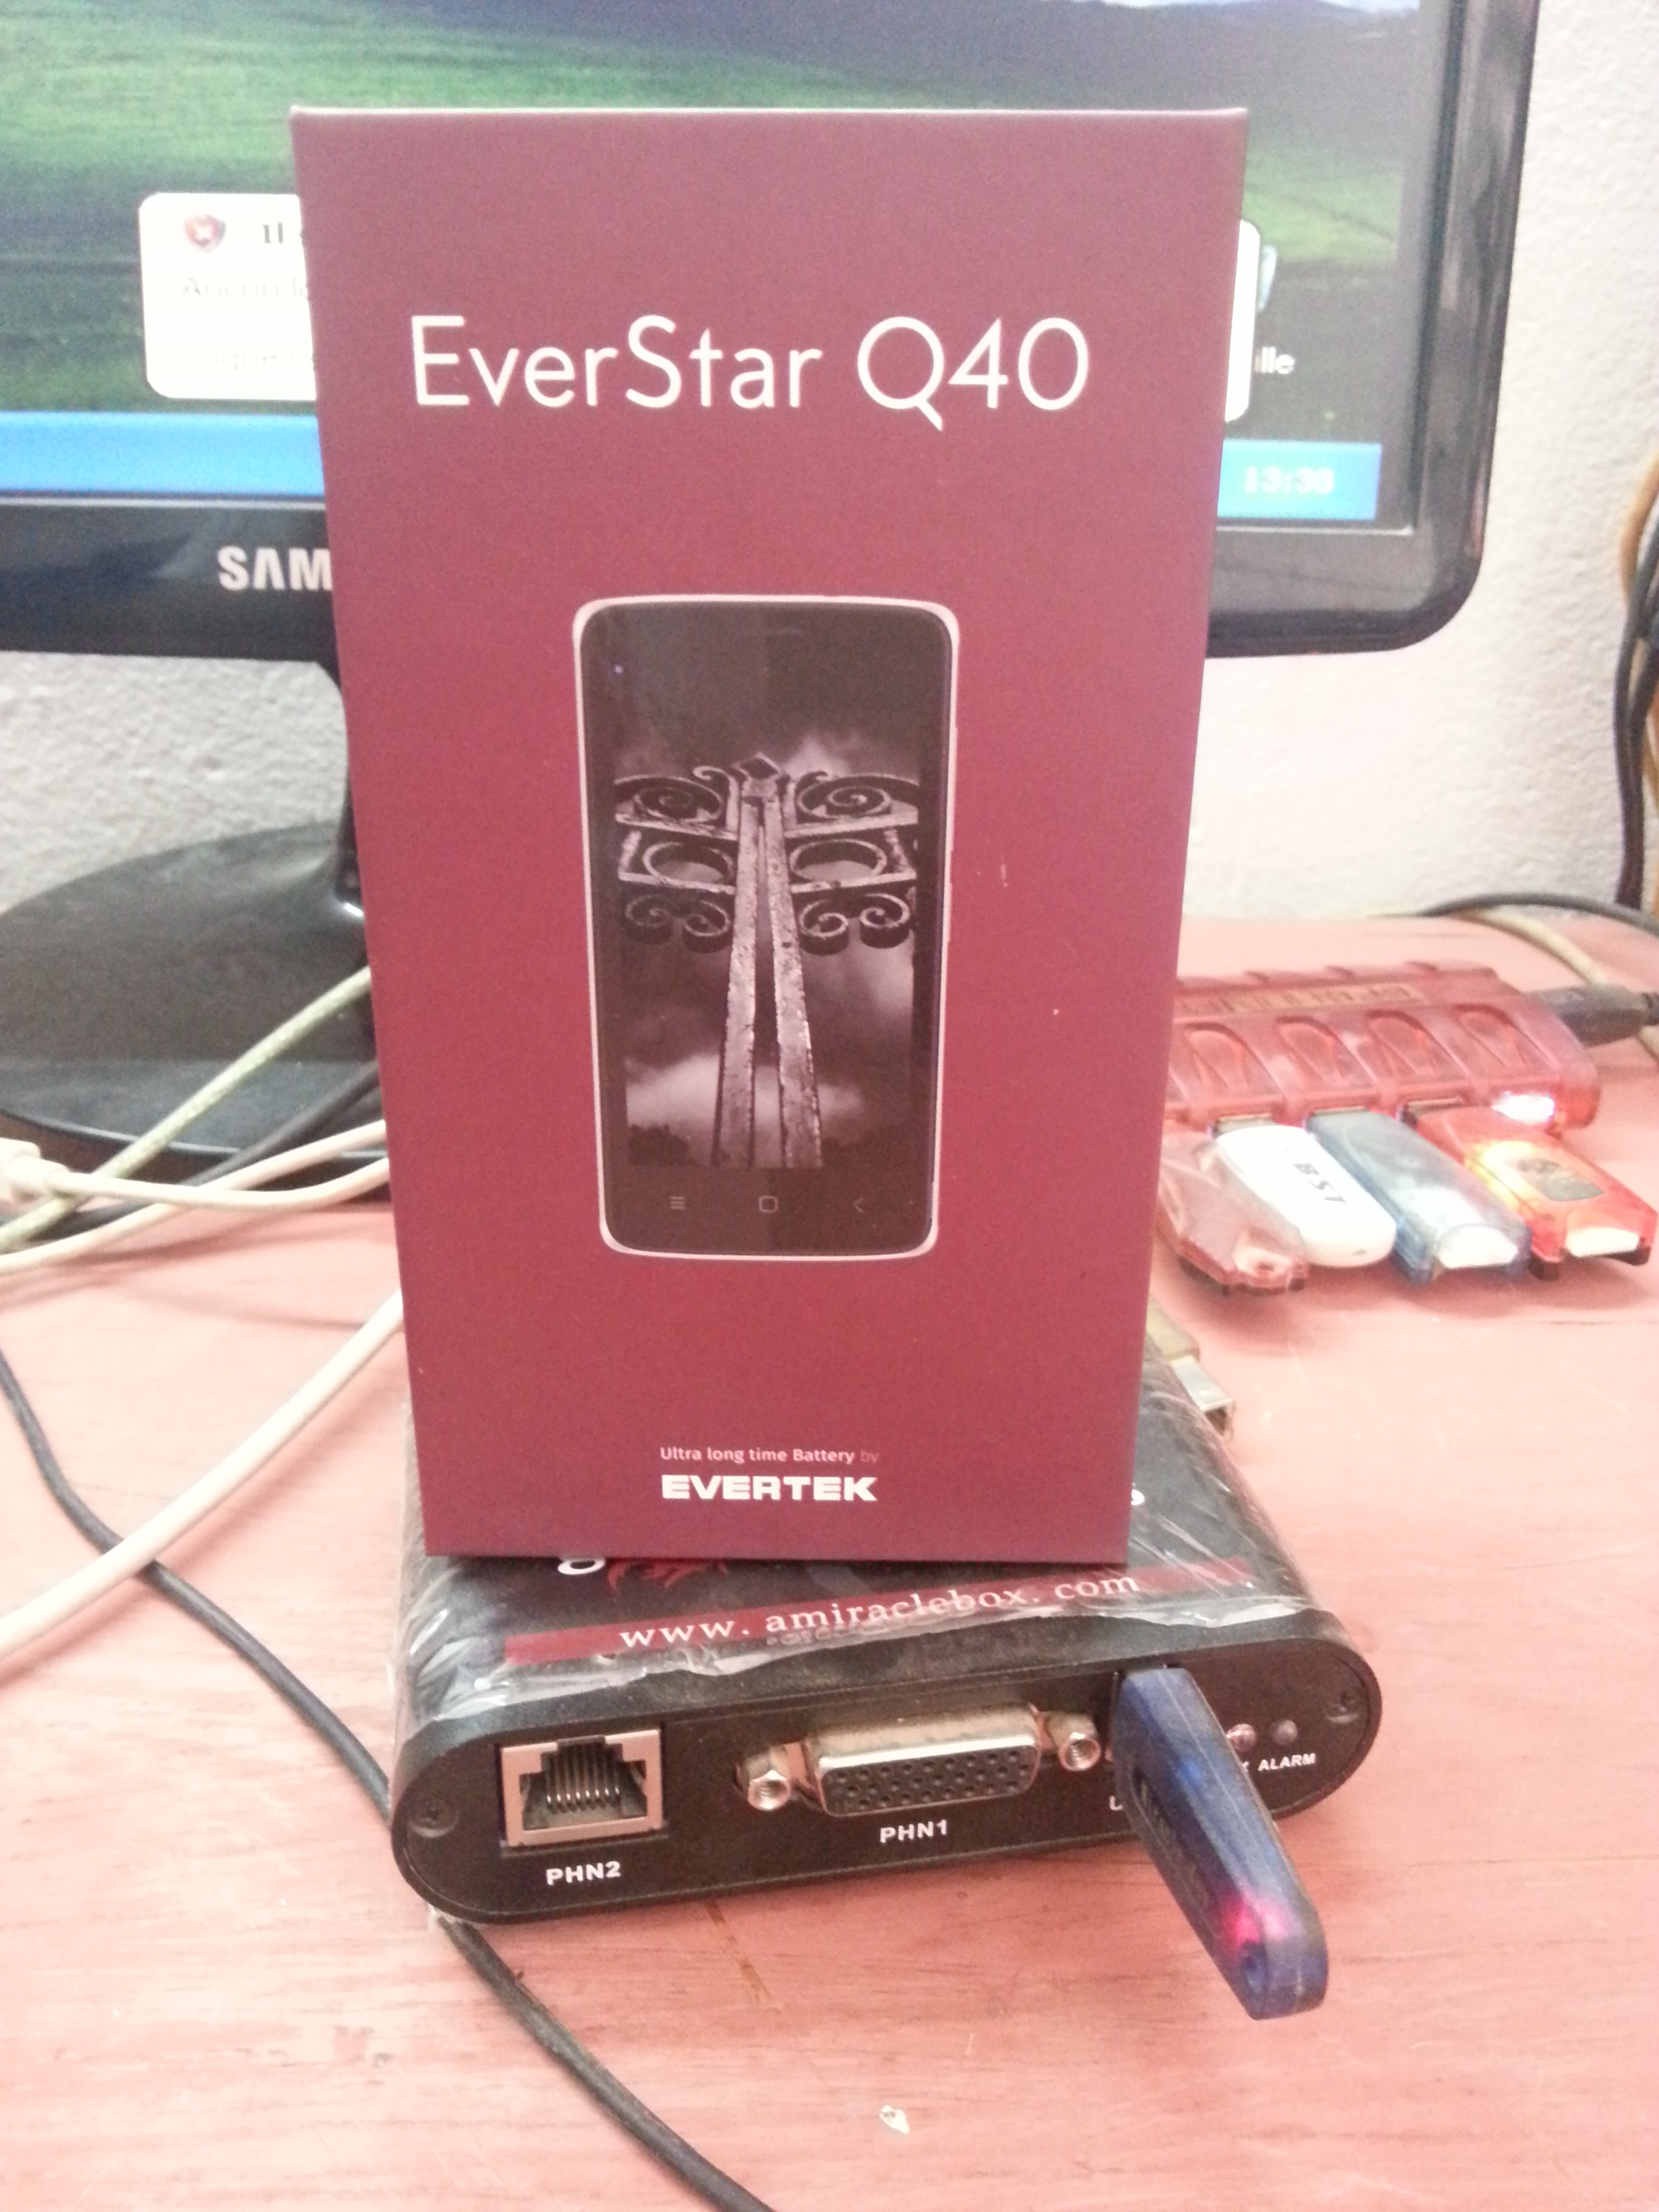 :PAID: firmware Everstar Q40 - صفحة 3 0922147001464788189